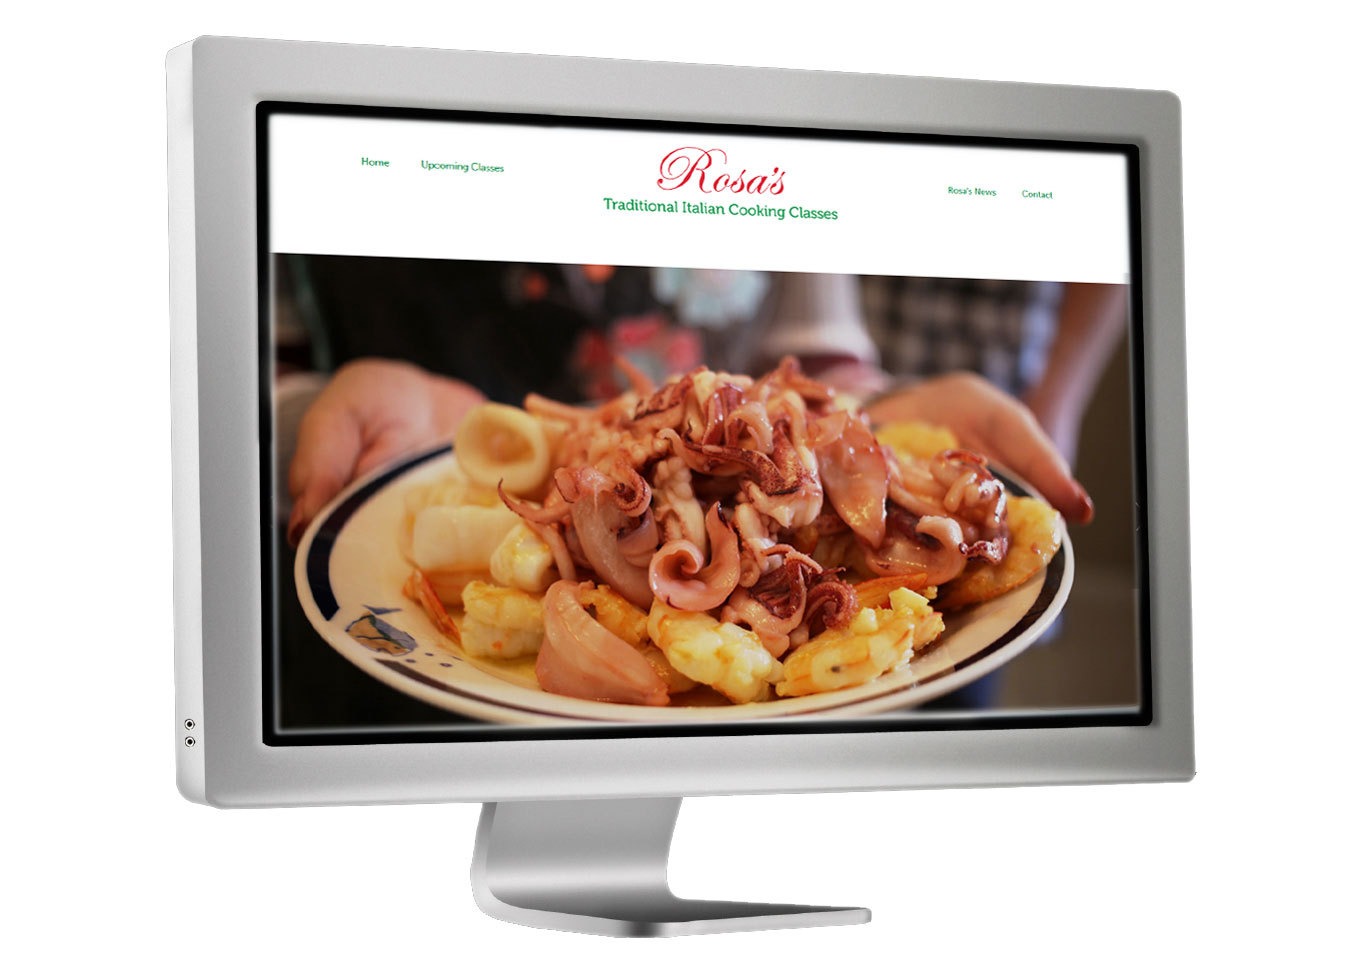 Cook with Rosa's website image